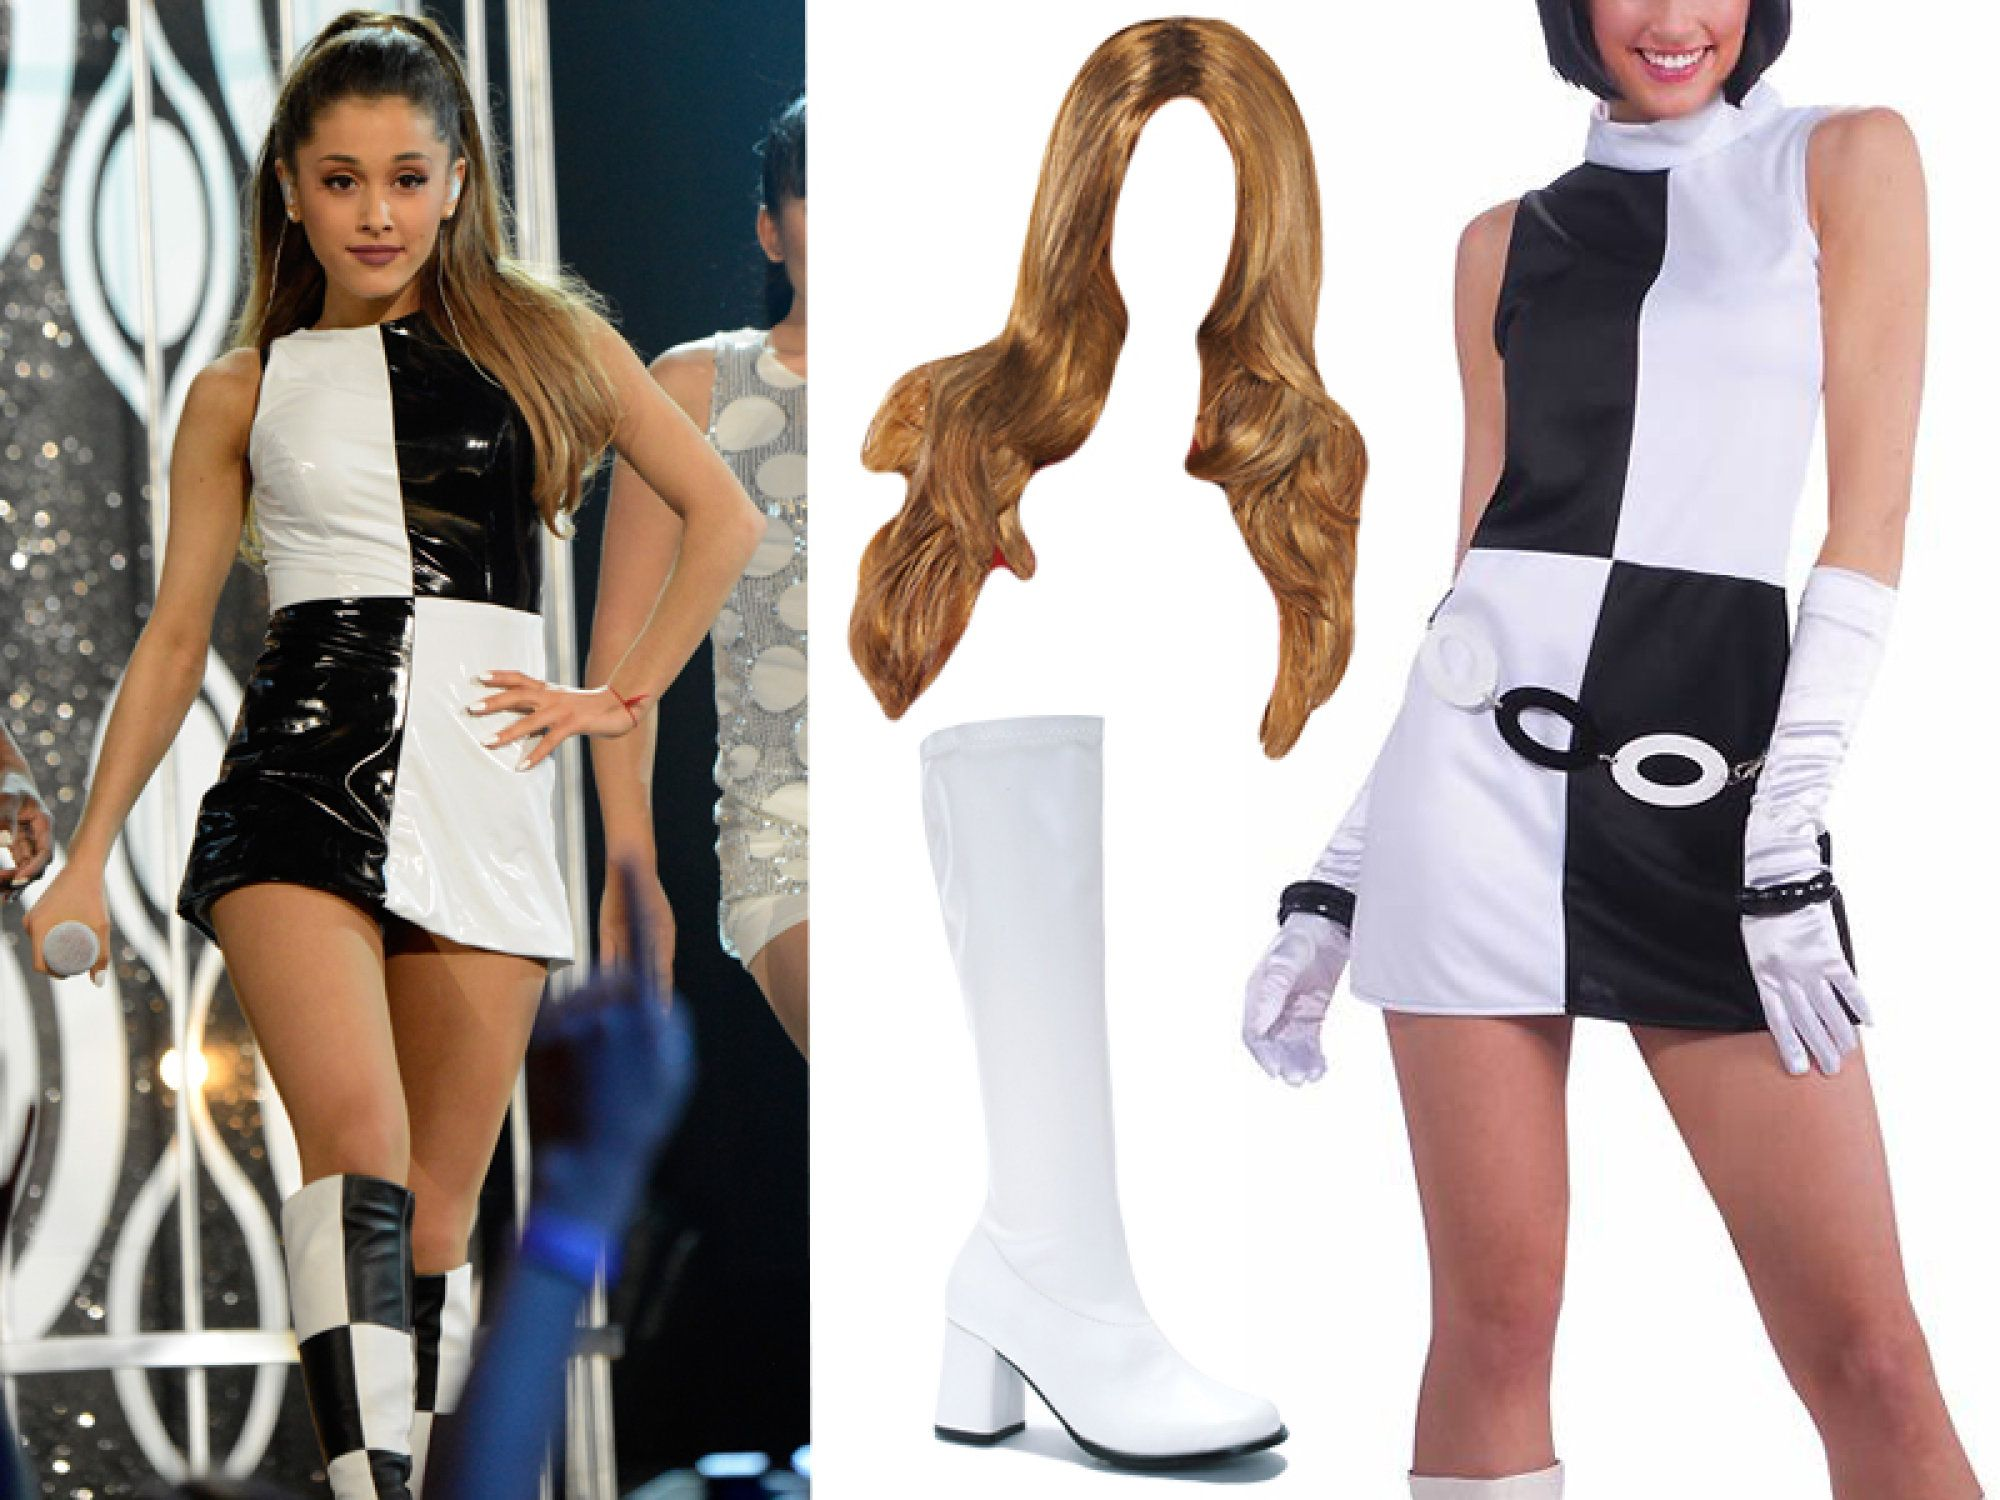 Ariana Grande Halloween Costume 2019.Here Are 2 Extremely Easy Ariana Grande Halloween Costume Ideas